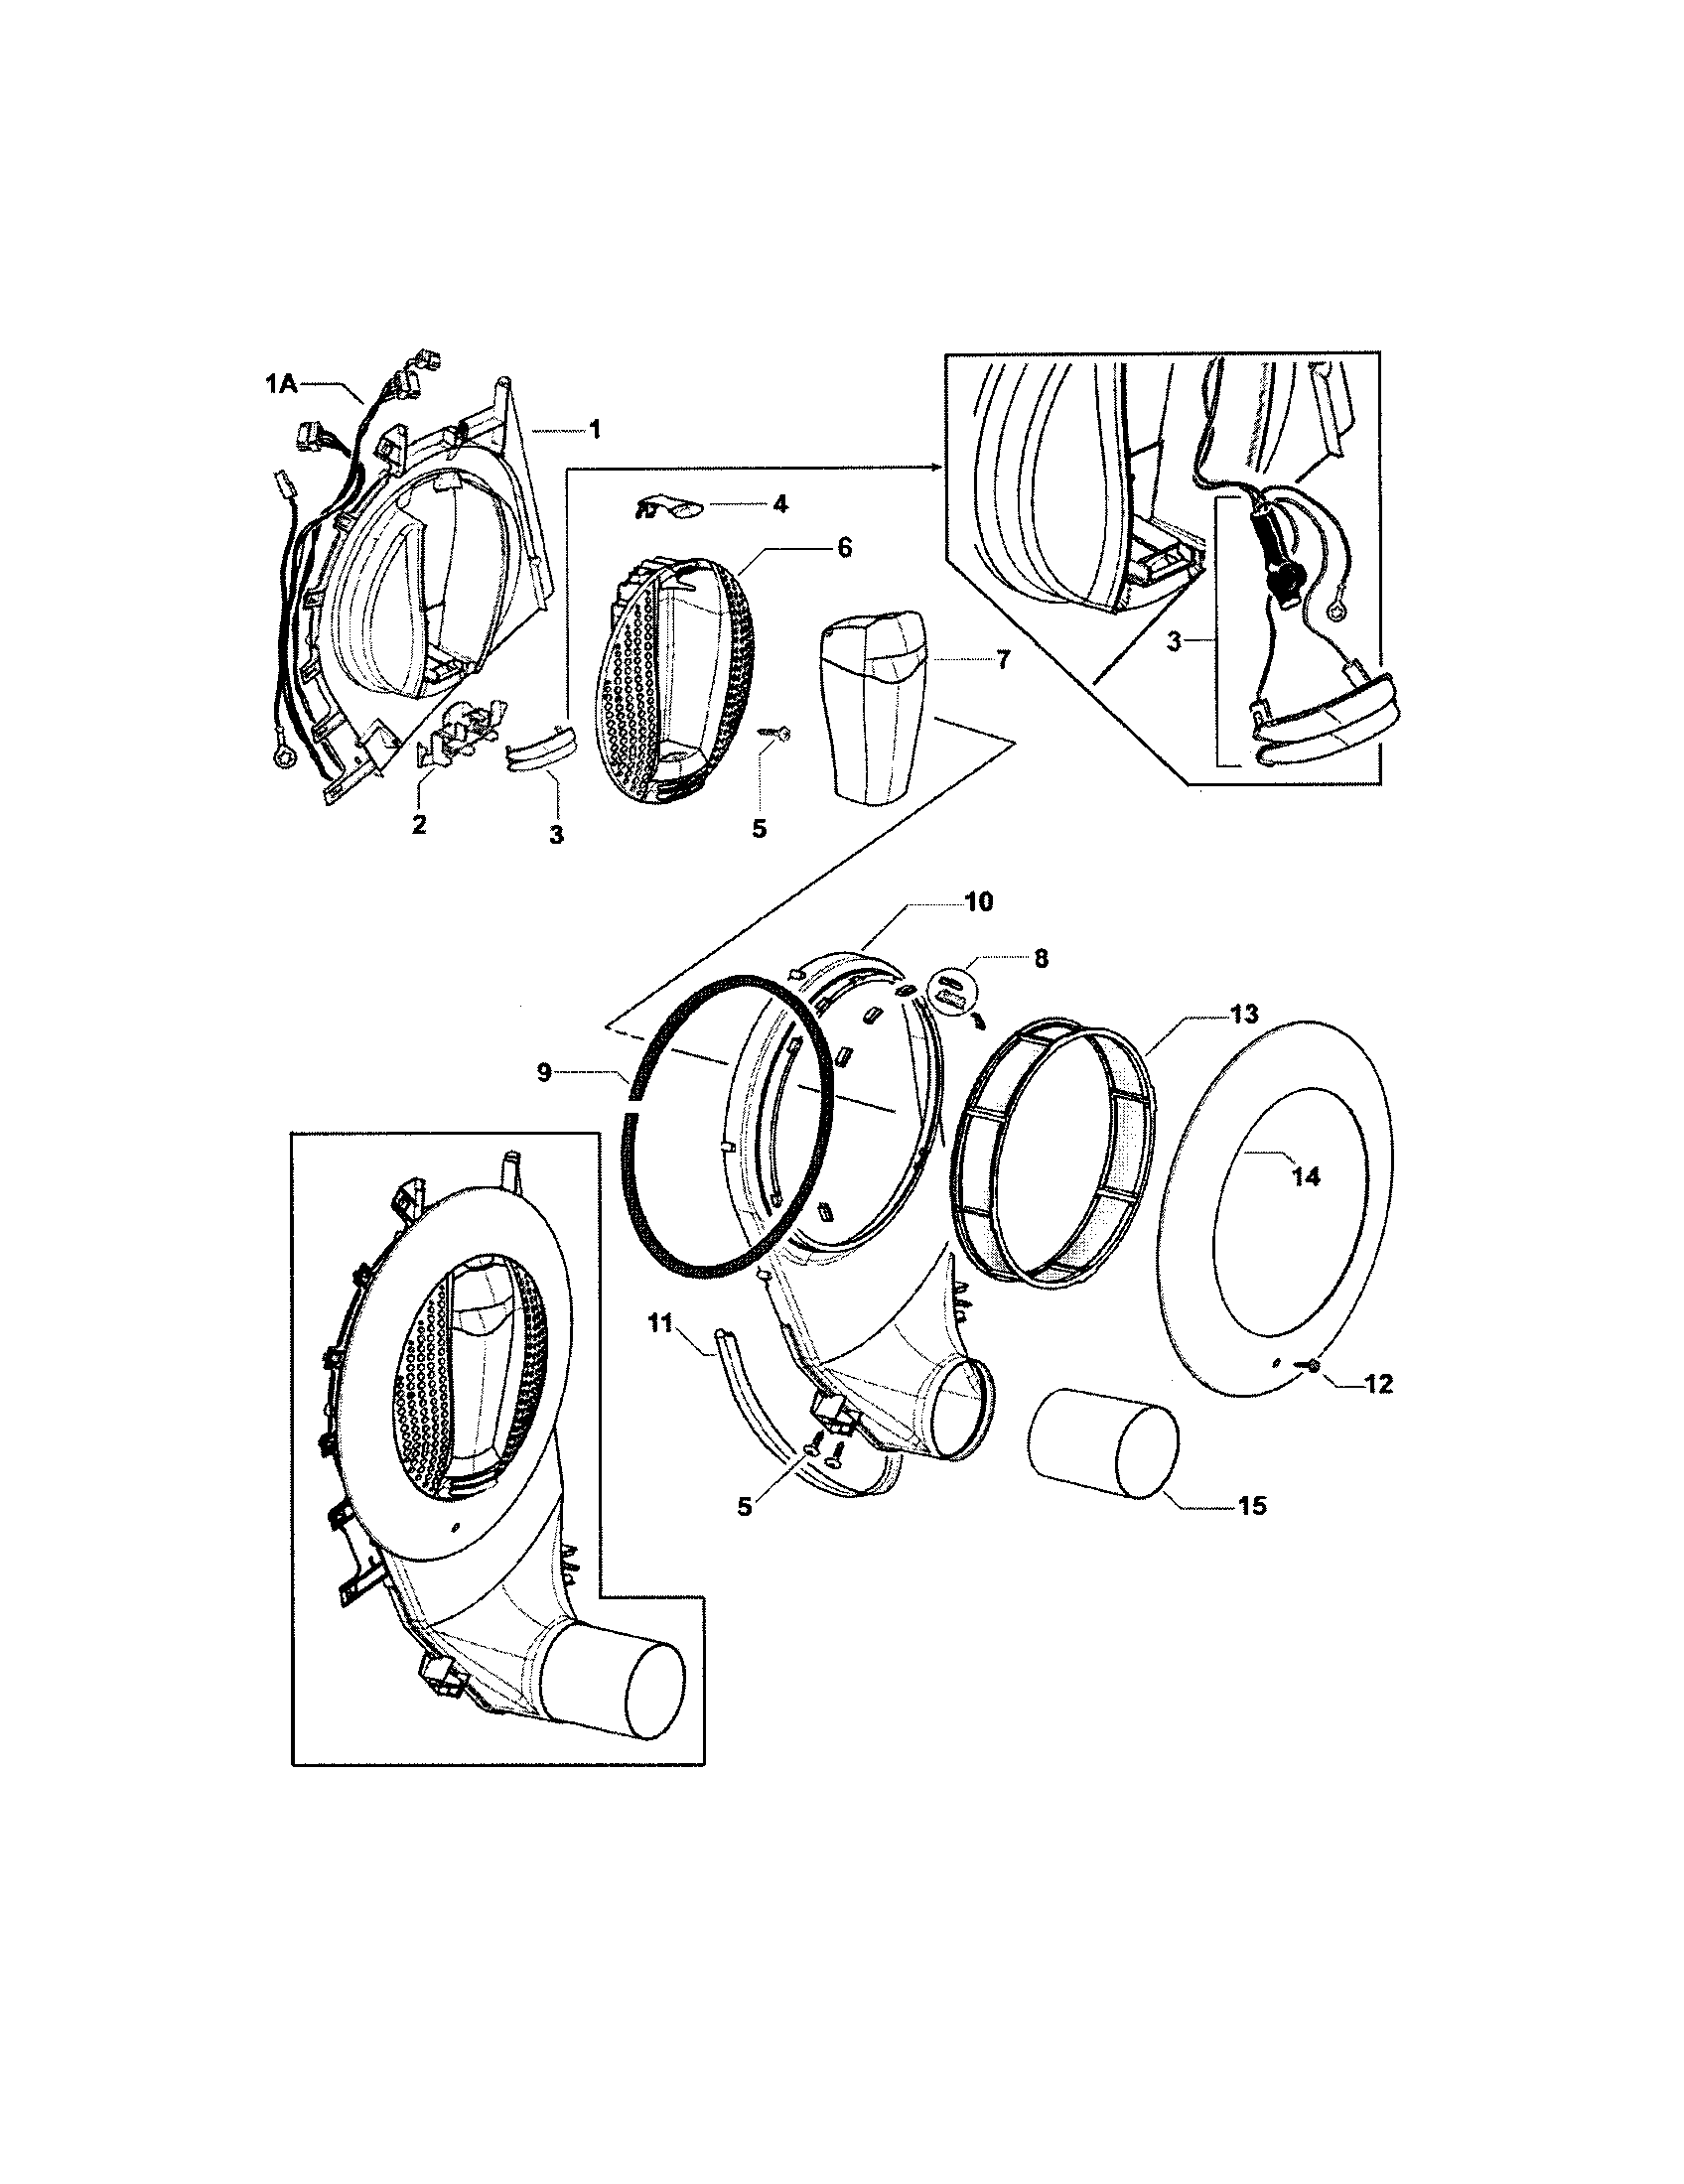 hight resolution of fisher paykel dggx1 96011b outlet duct diagram